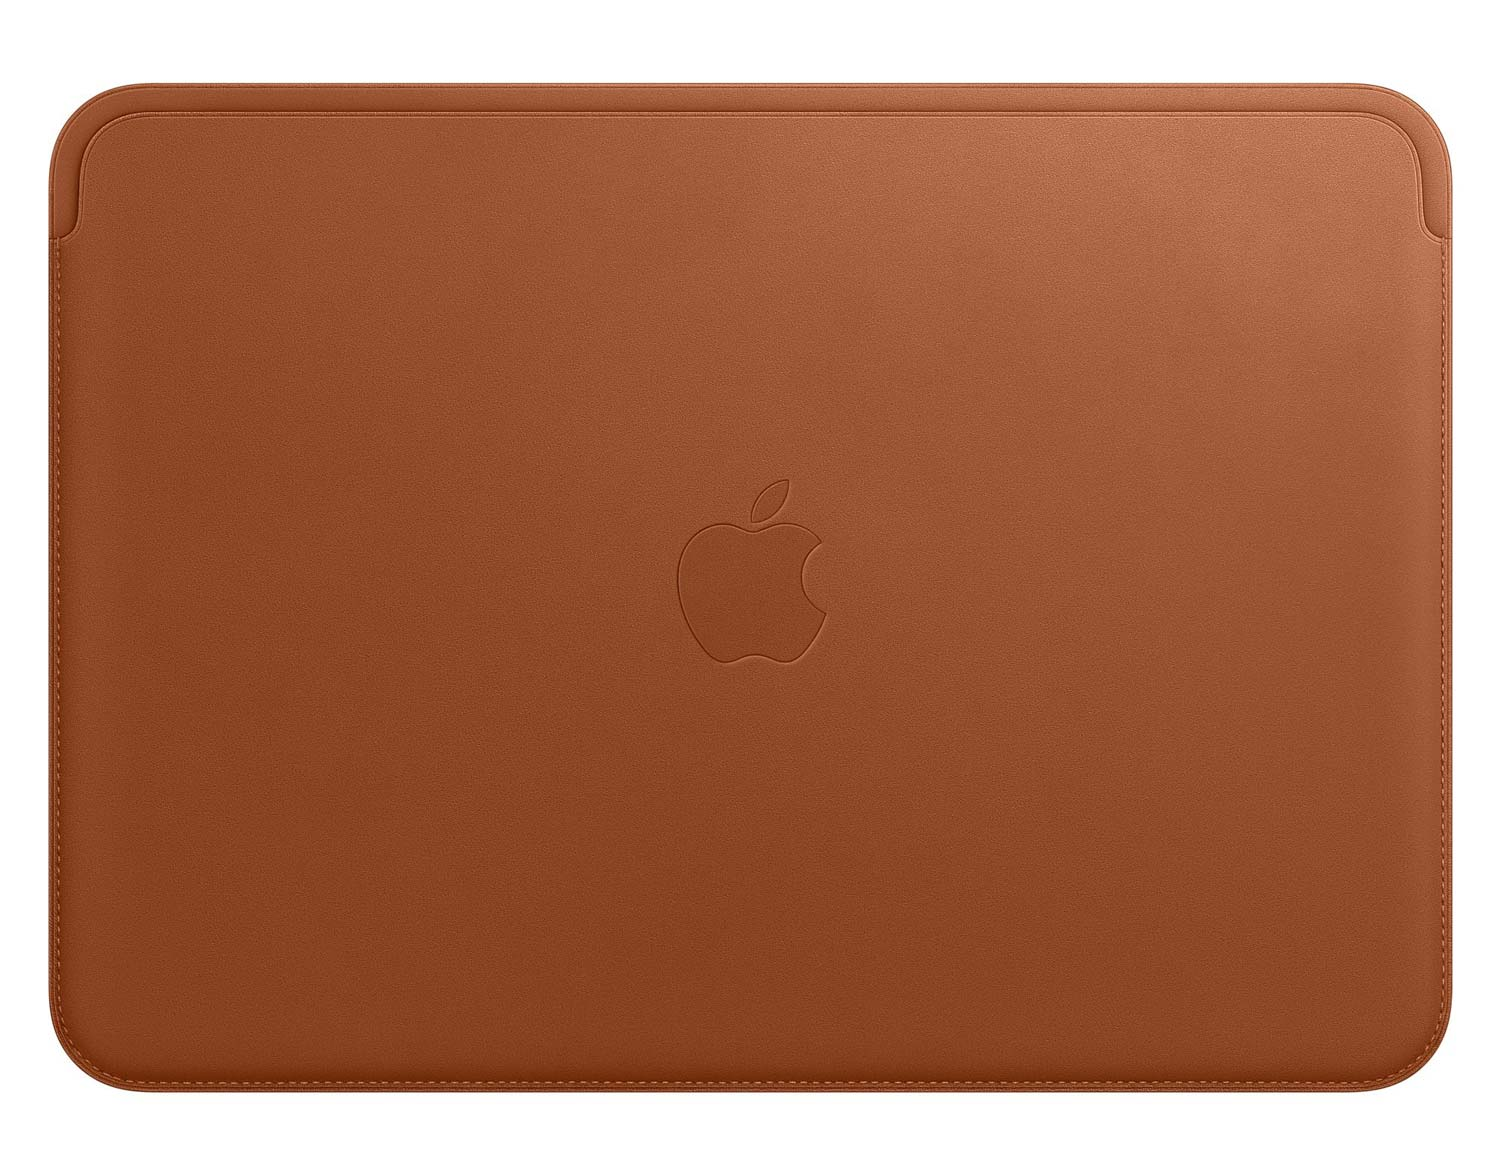 Apple Leather Sleeve for 12 inch MacBook Front in Brown